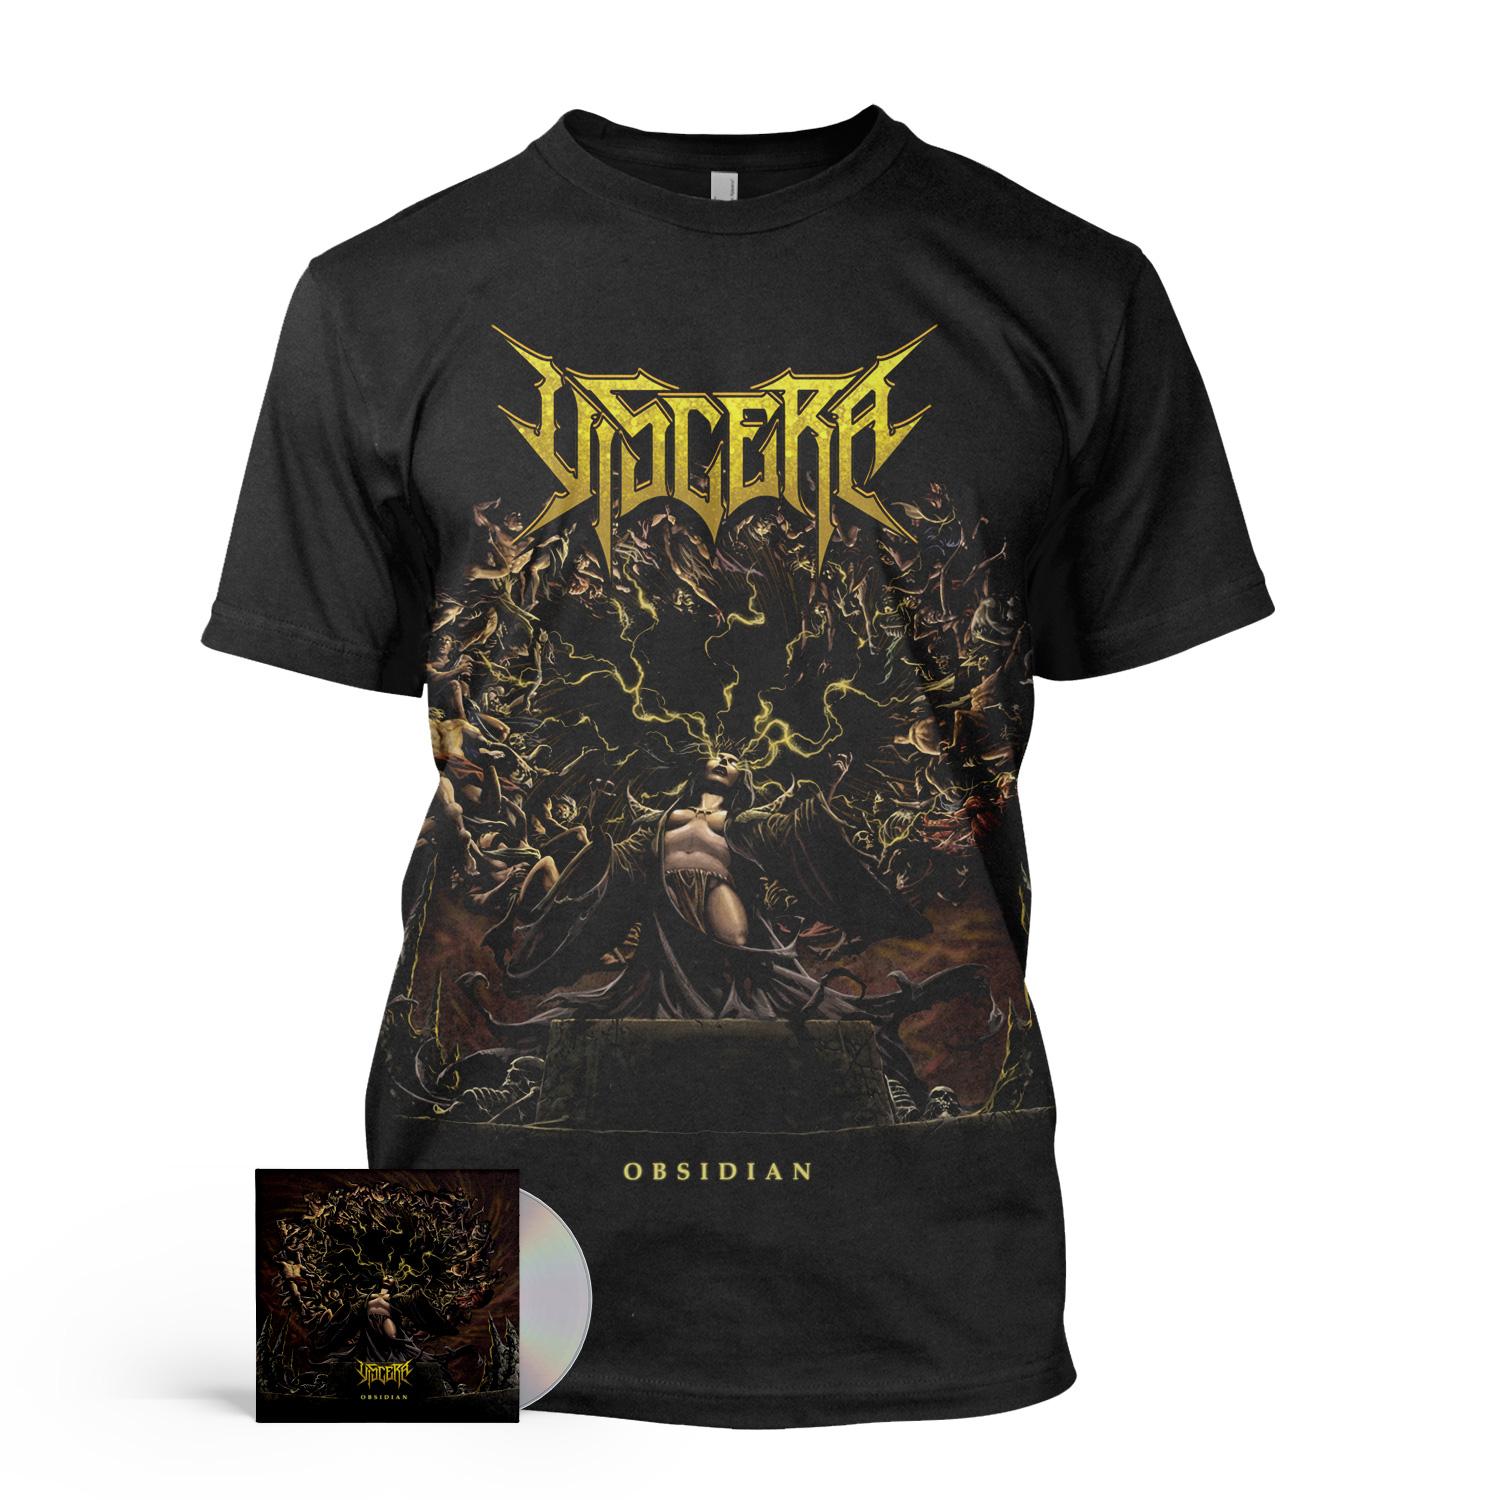 Obsidian CD + Tee Bundle